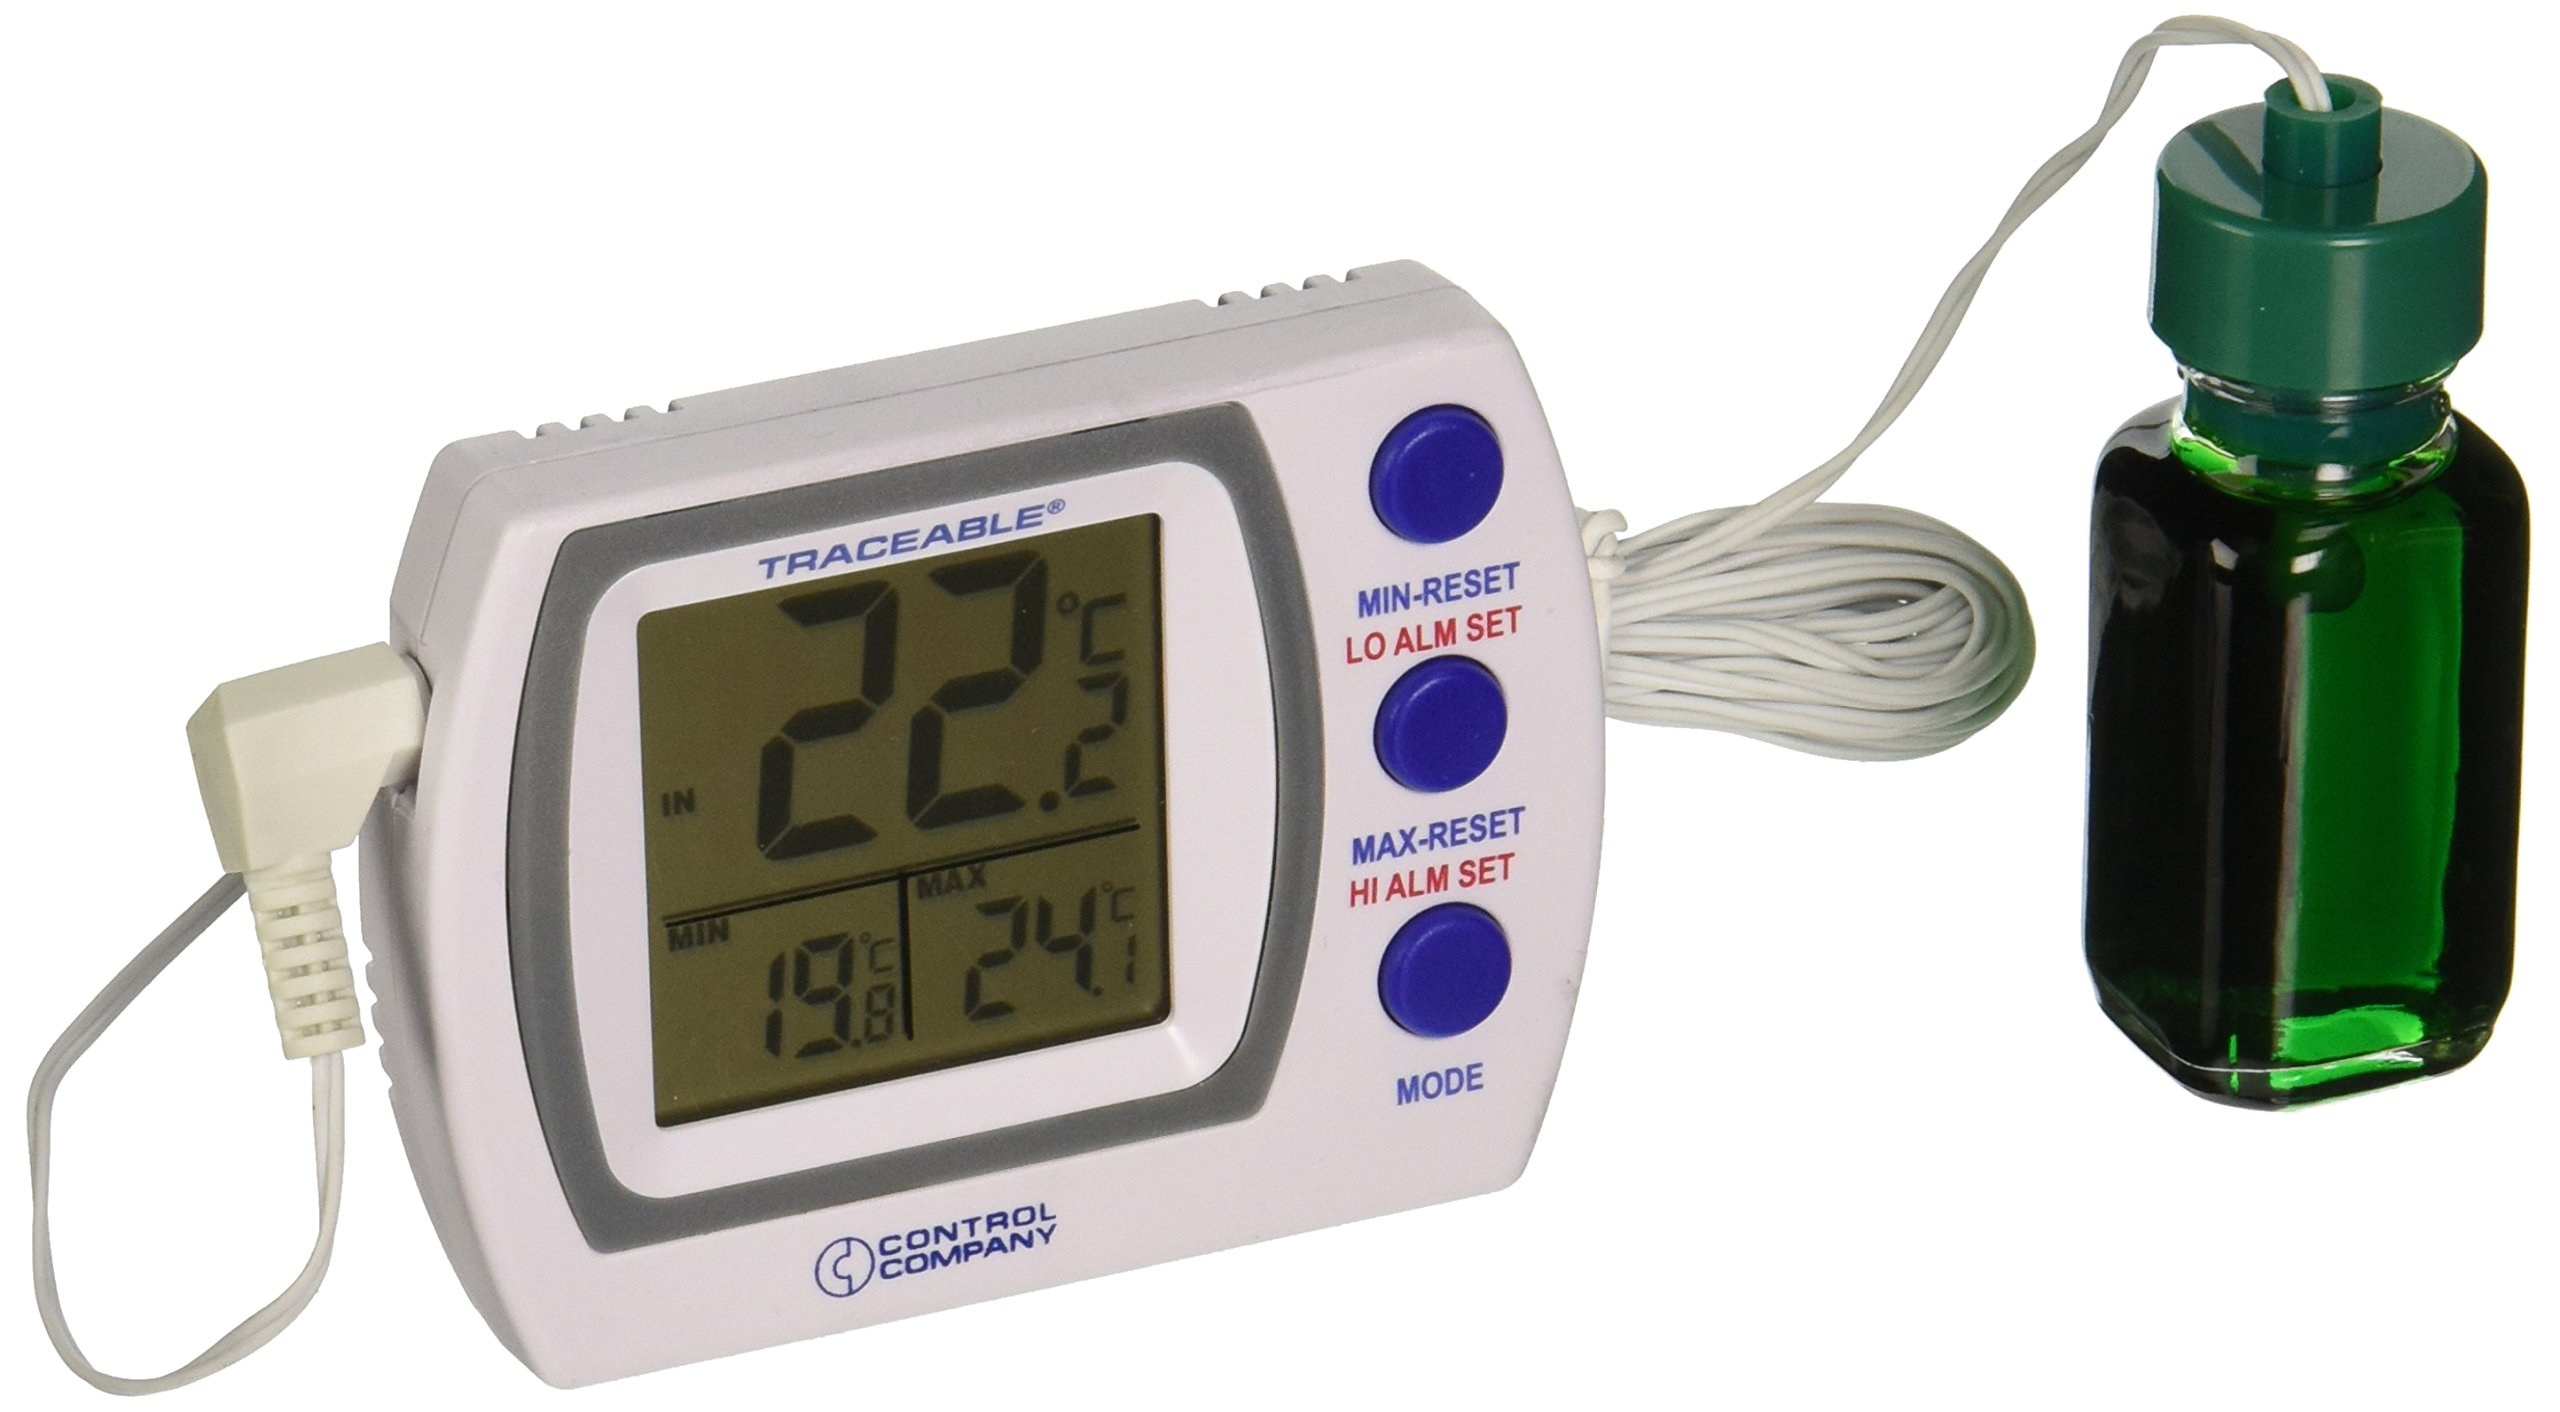 Control Company 4227 Traceable NIST Certified Refrigerator/Freezer Thermometer with Alarm